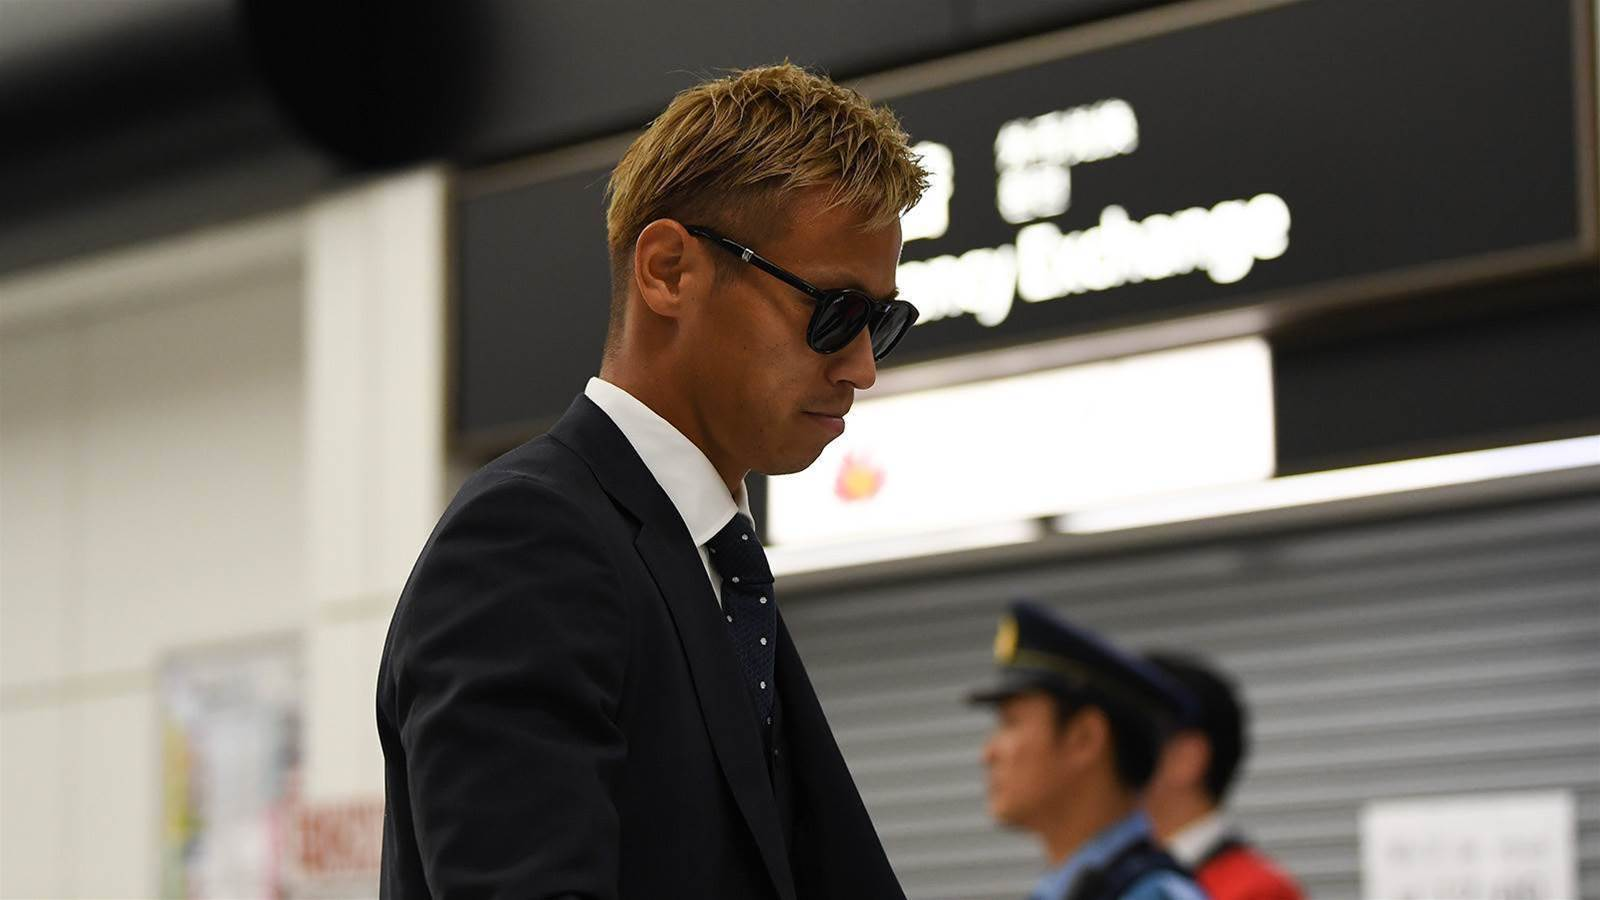 Keisuke Honda's set to sign for Melbourne Victory tomorrow...